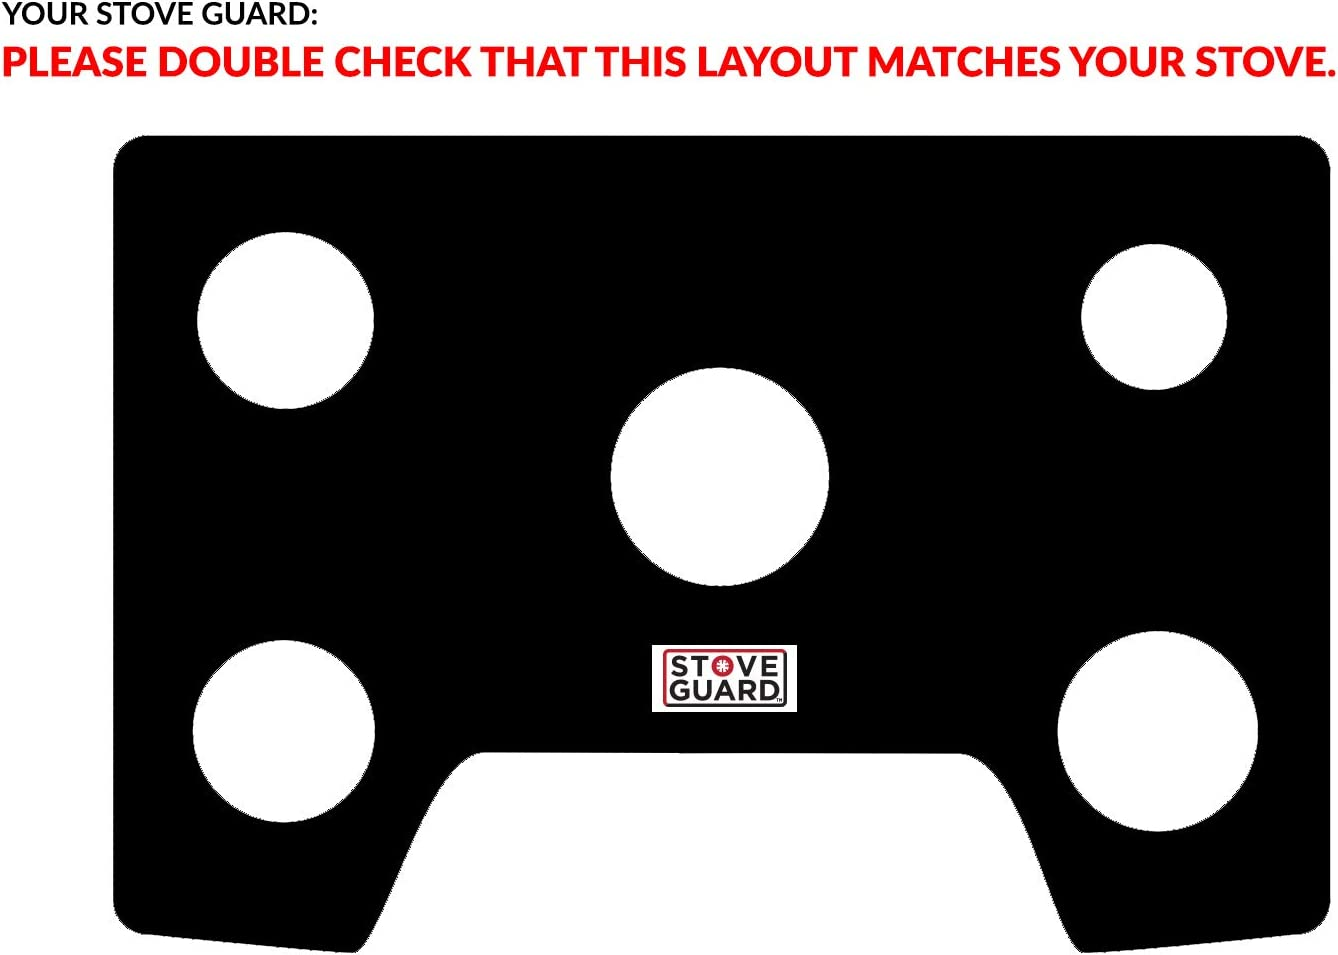 Easy Cleaning Stove Liners for LG Model LRG3194BD Customized Stove Top Protector for LG Gas Ranges LG Stove Protector Liners